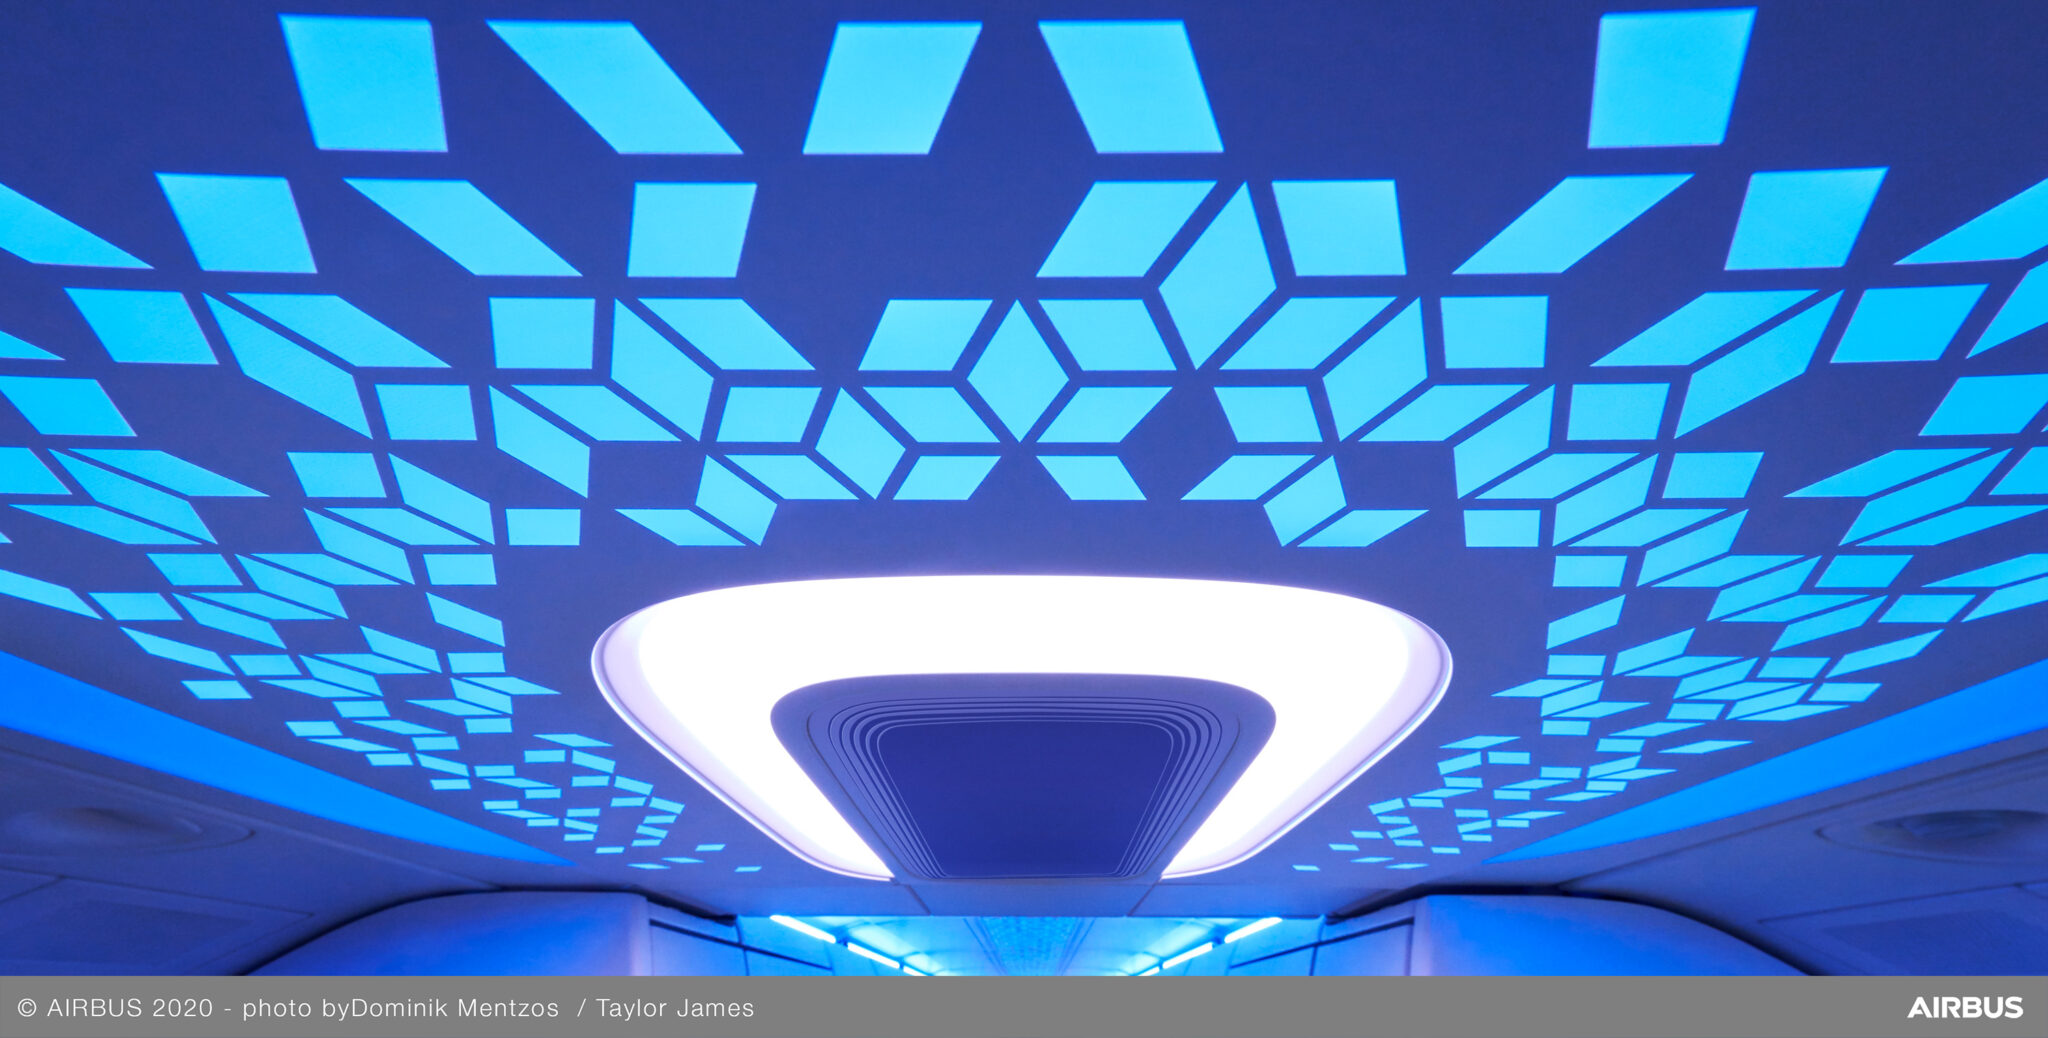 Close up of Diehl's ceiling panel showing geometric shapes pattern in shades of blues and purples.